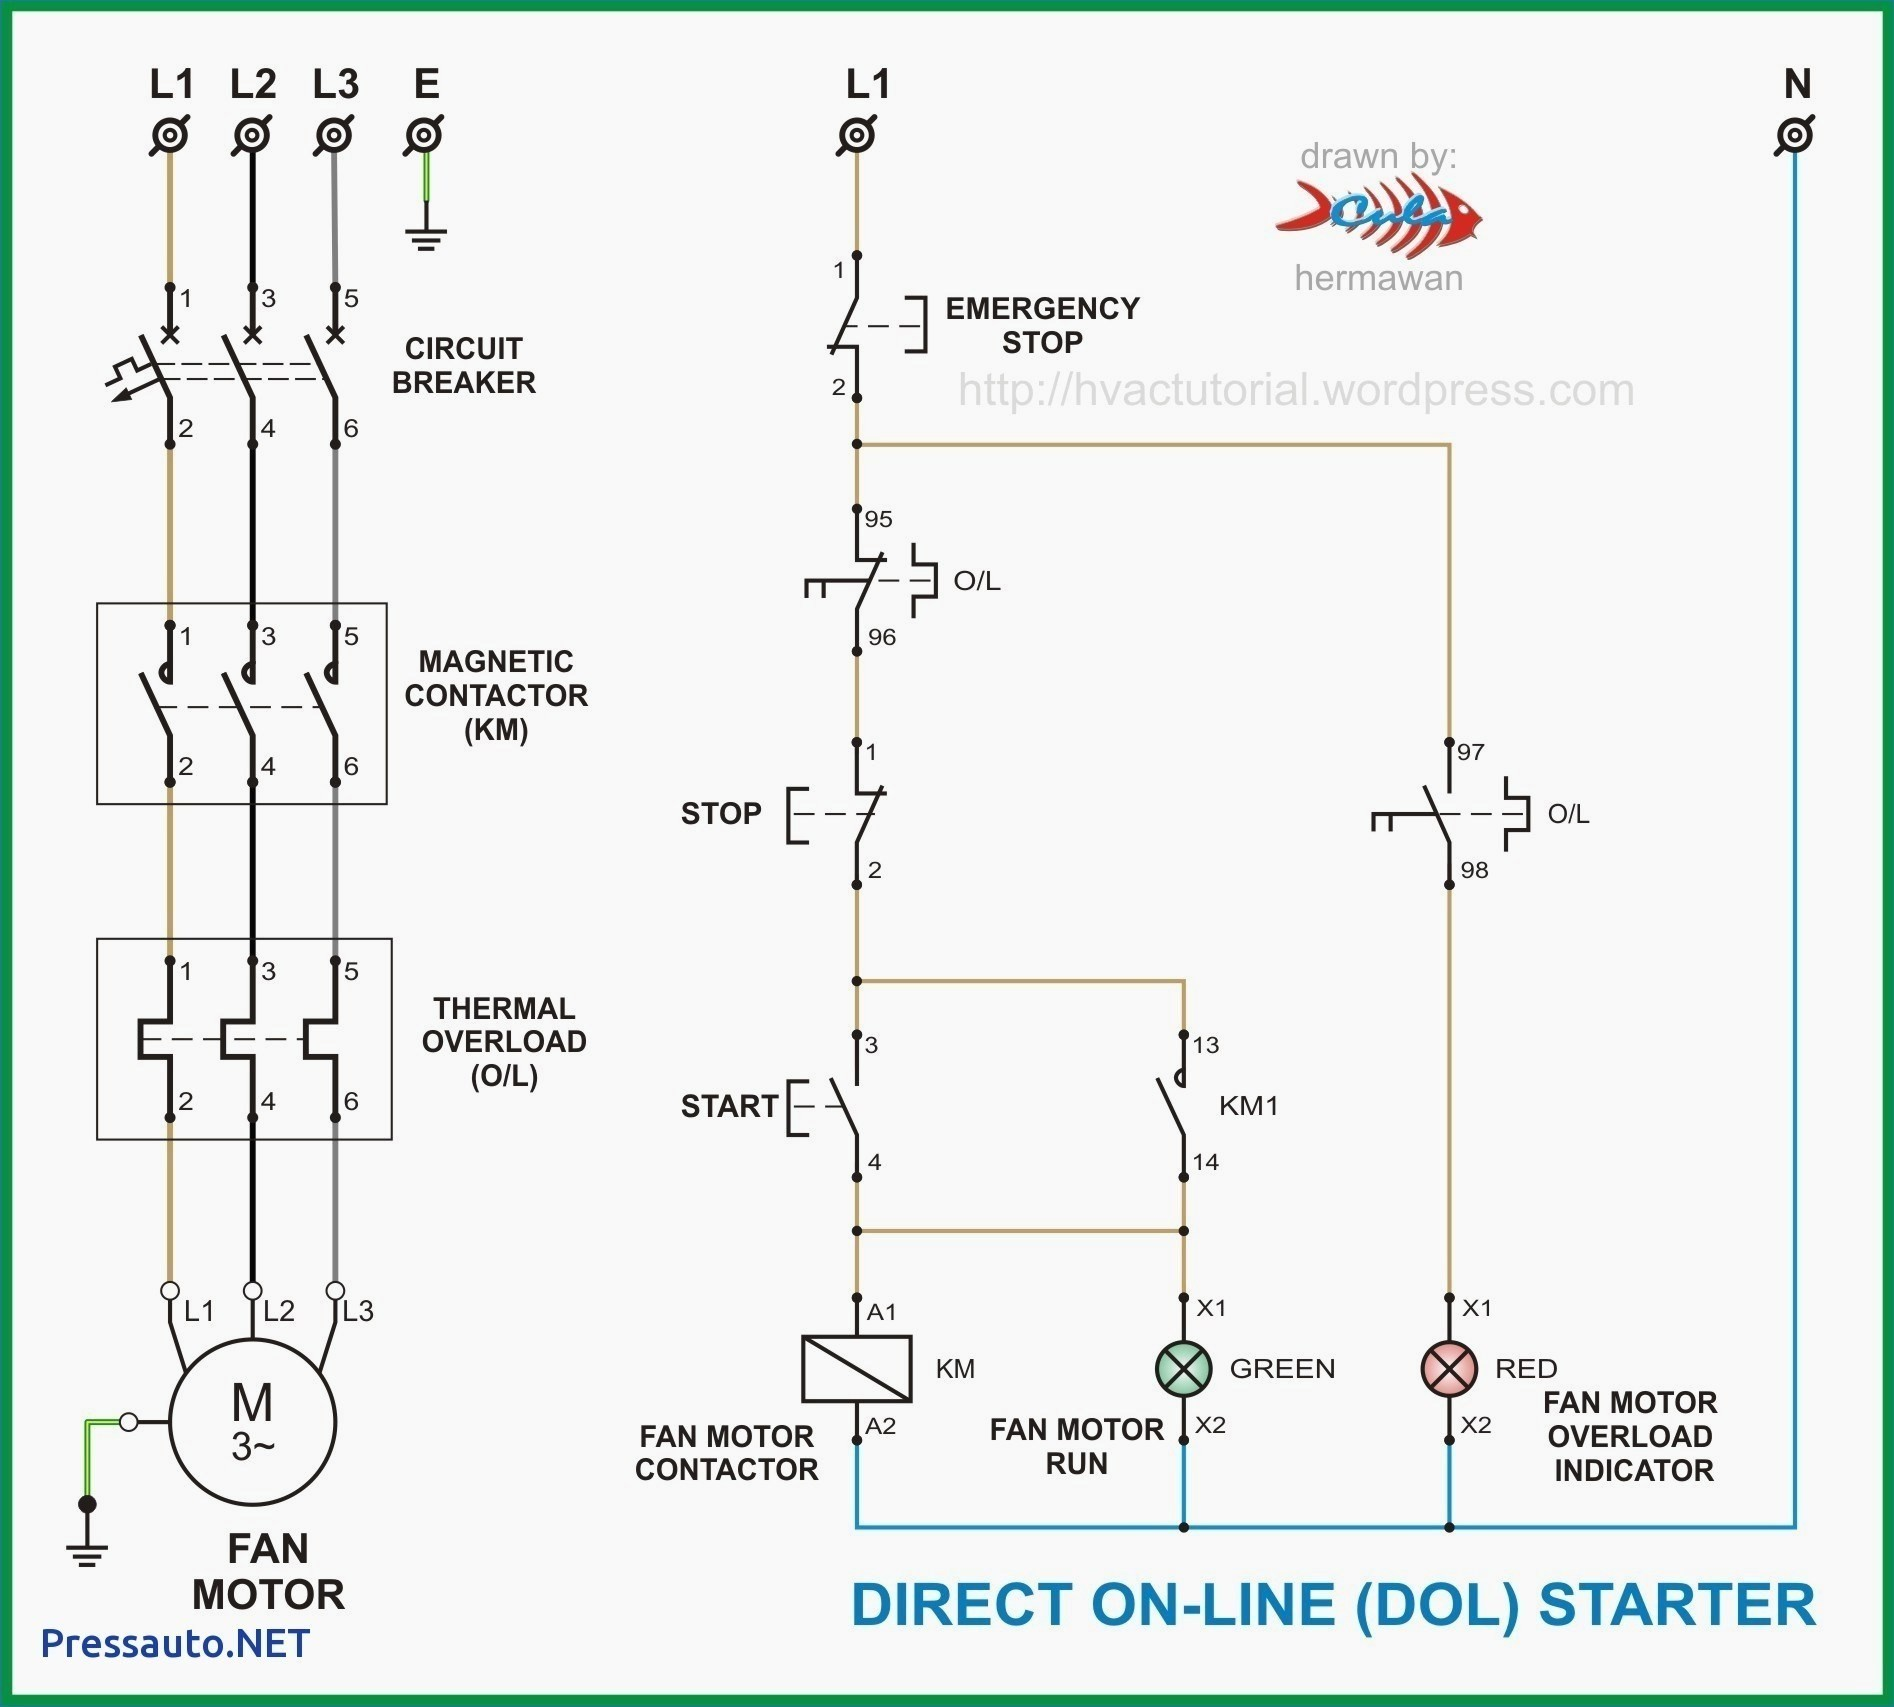 Iec Motor Starter Wiring Diagram - New Wiring Diagrams on wound rotor motor diagram, 6 wire 3 phase connection diagram, overload relay symbol diagram, iec motor charts, electric motor symbol diagram, slip ring motor diagram, synchronous motor diagram, dc motor diagram, iec 9 lead motor connections, iec motor brakes, ac motor diagram, iec starter, 6 terminal motor connection diagram, motor starter ladder diagram, iec motor capacitor, iec motor frame, iec motors servo, iec motor dimensions, iec 12 lead motor connections,